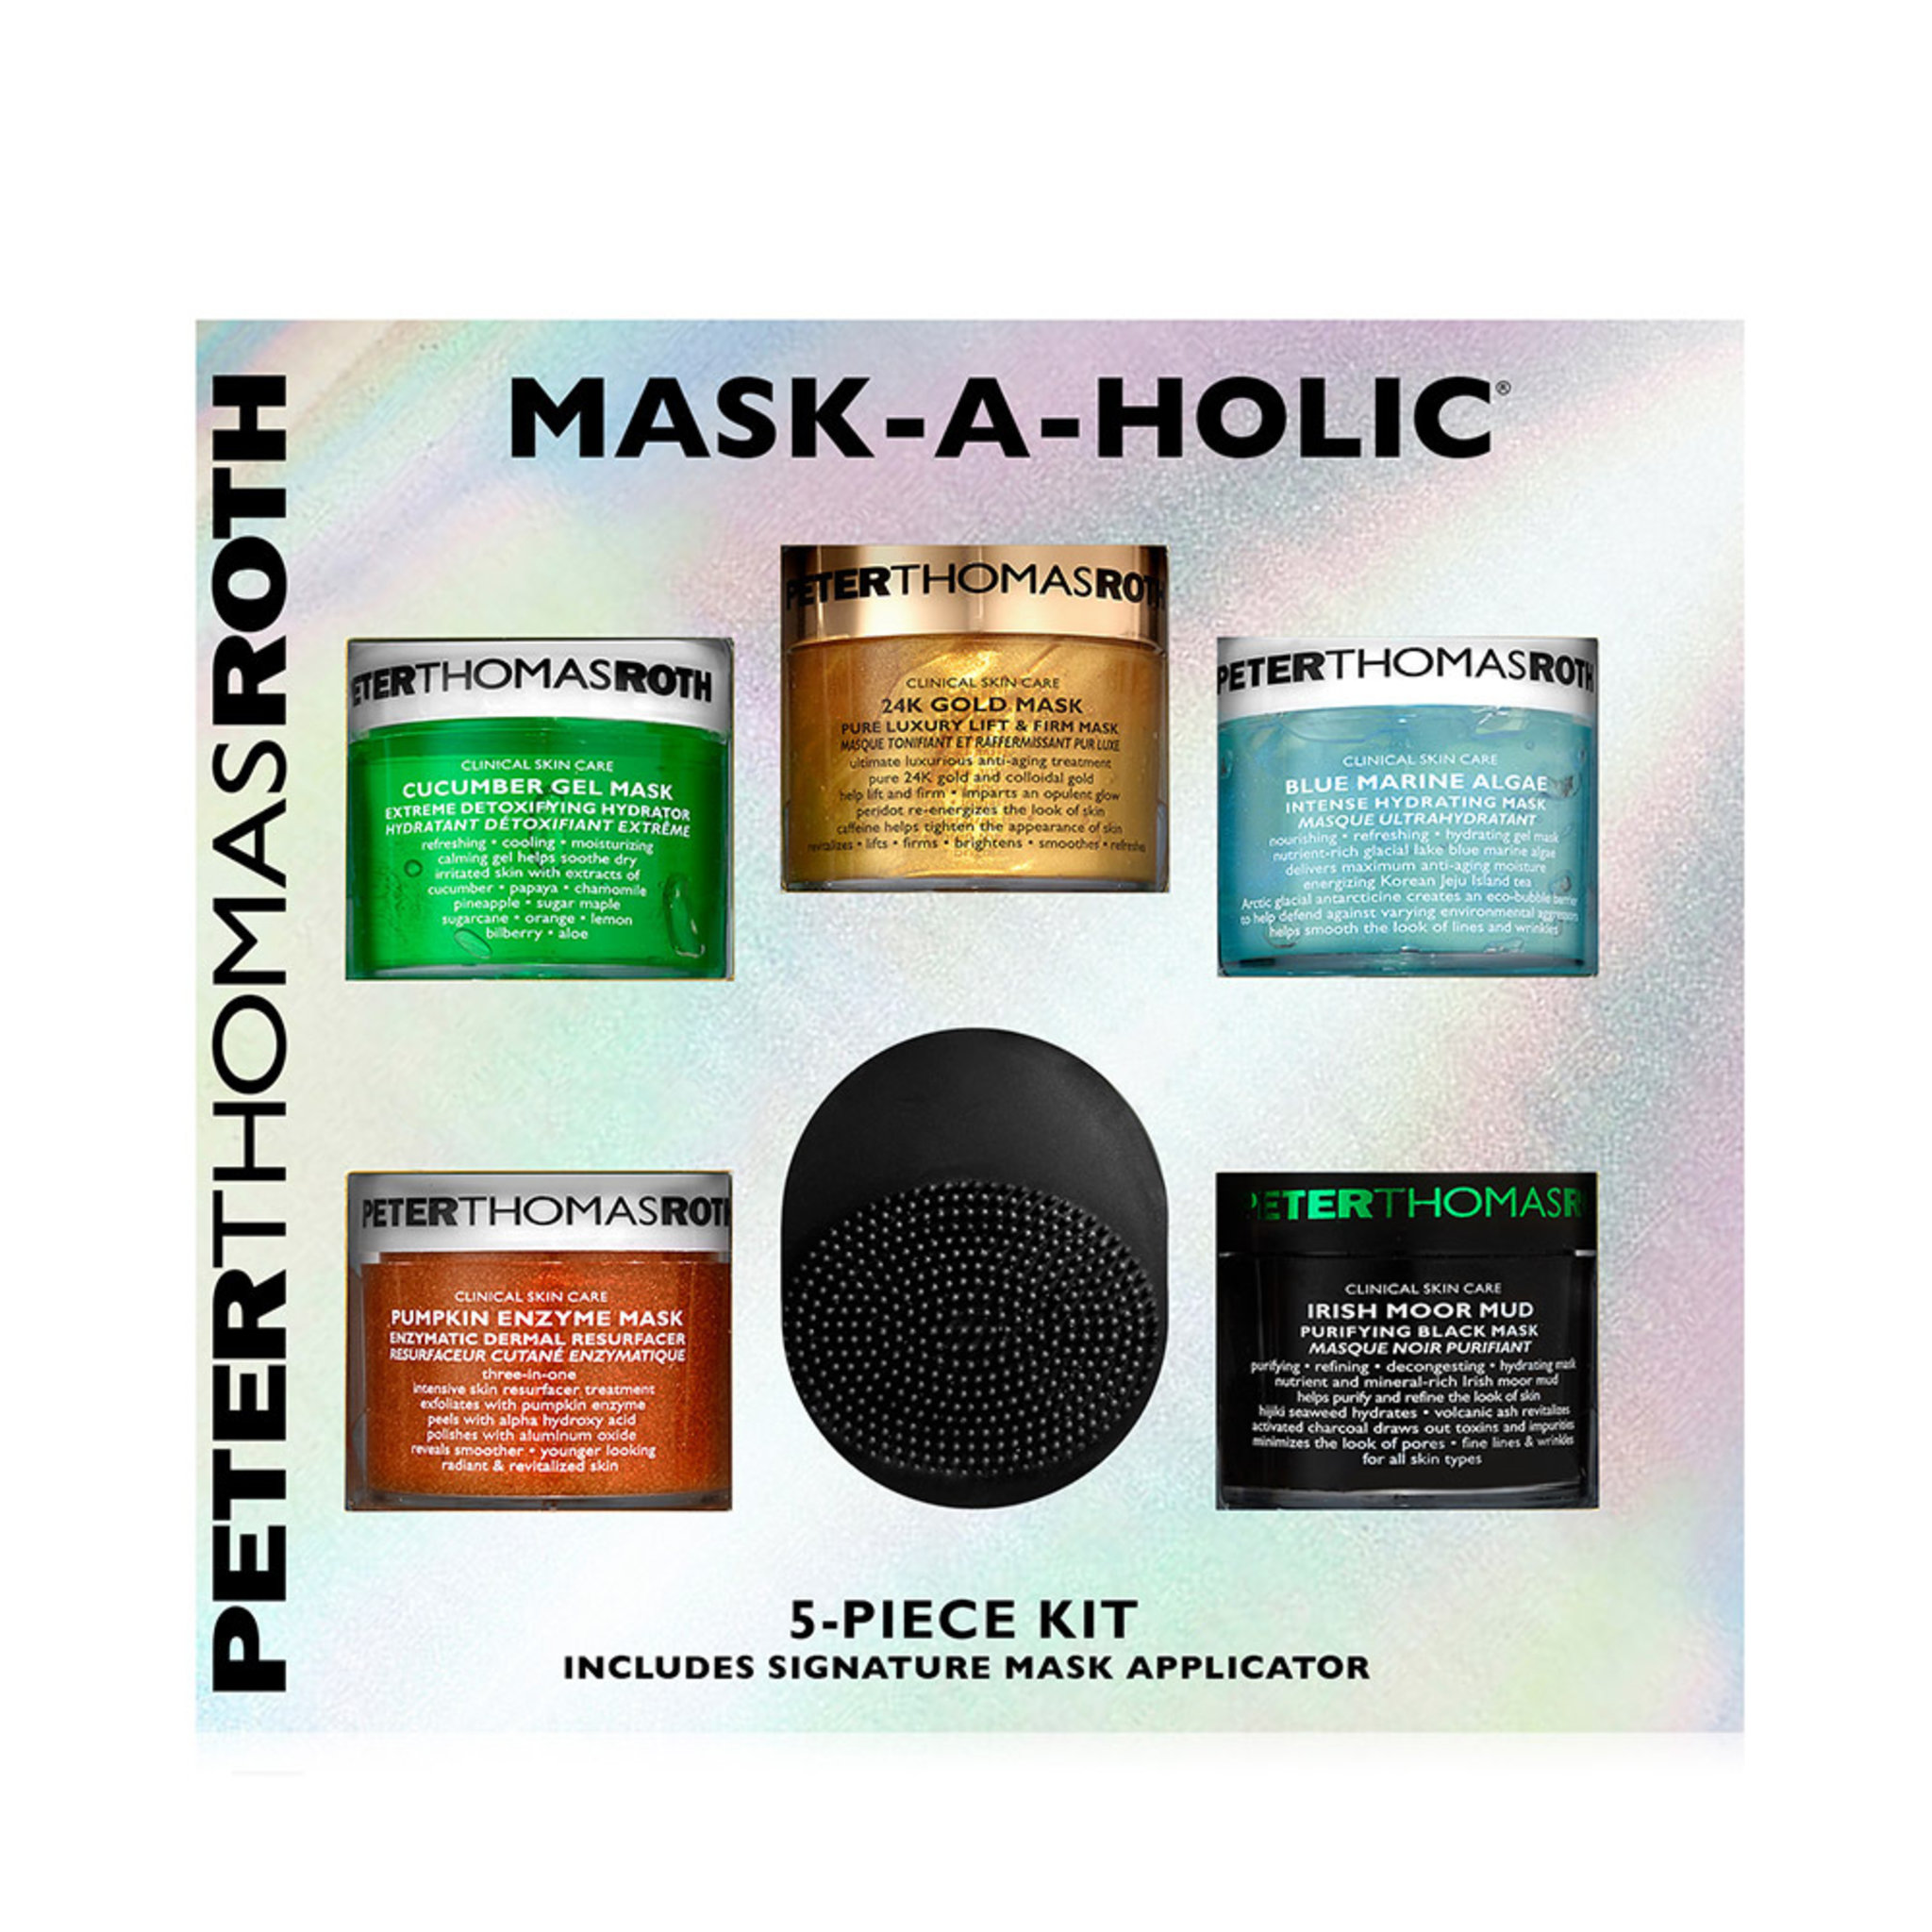 Mask-A-Holic Set